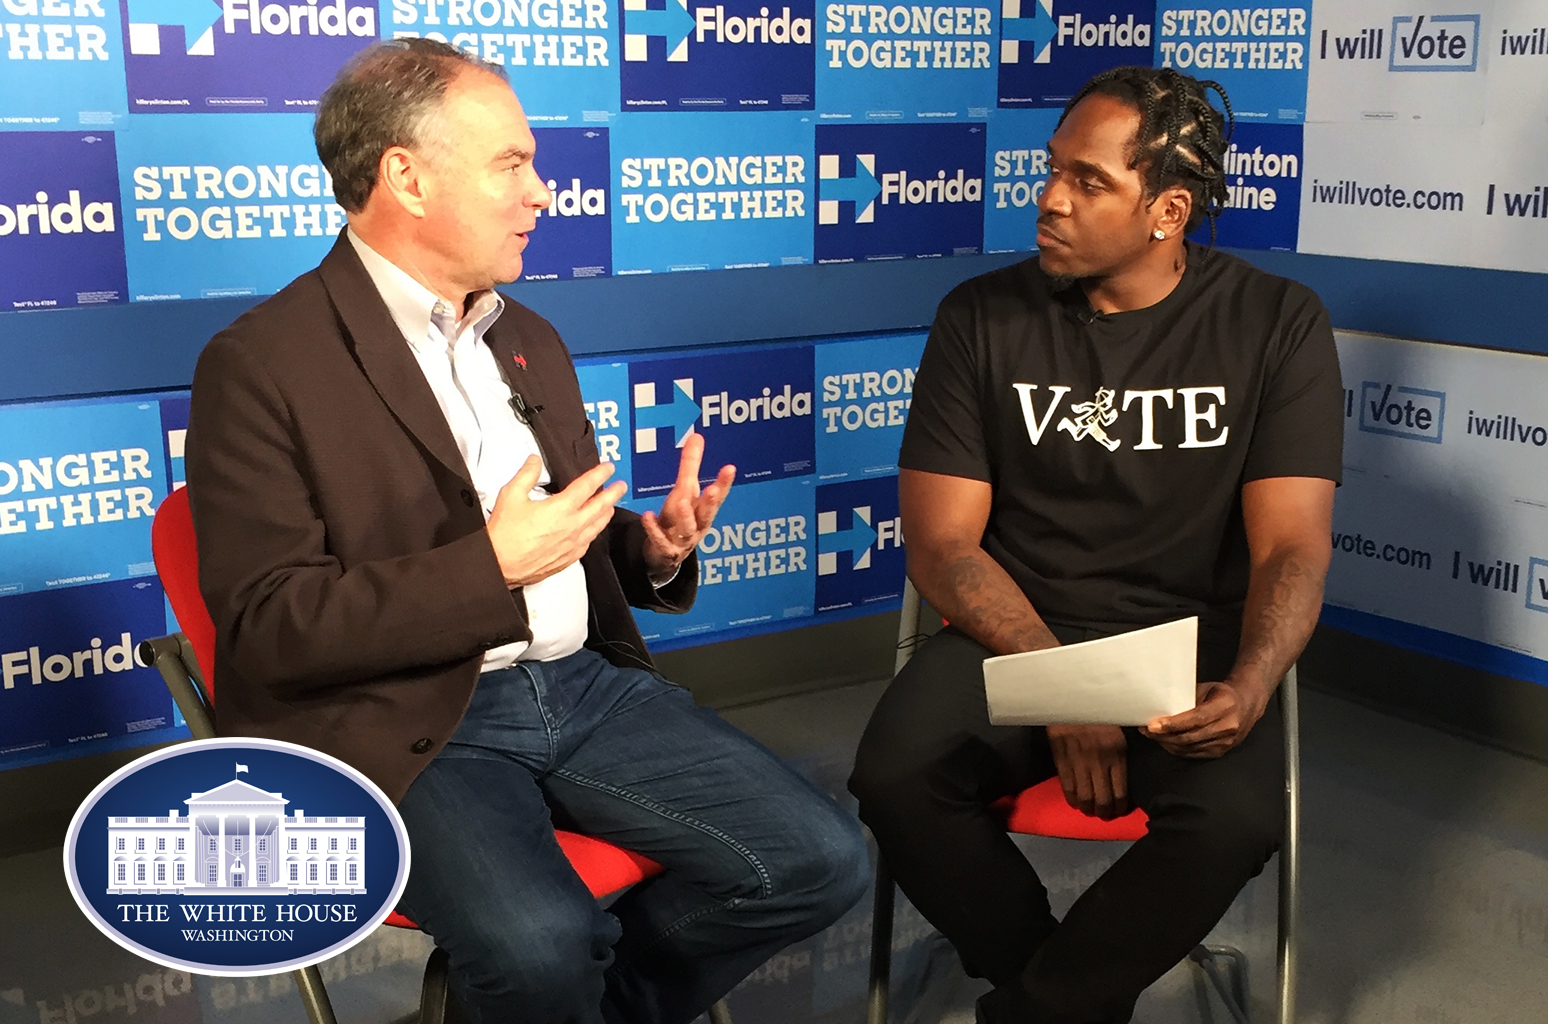 02-pusha-t-tim-kaine-2016-billboard-1548.png